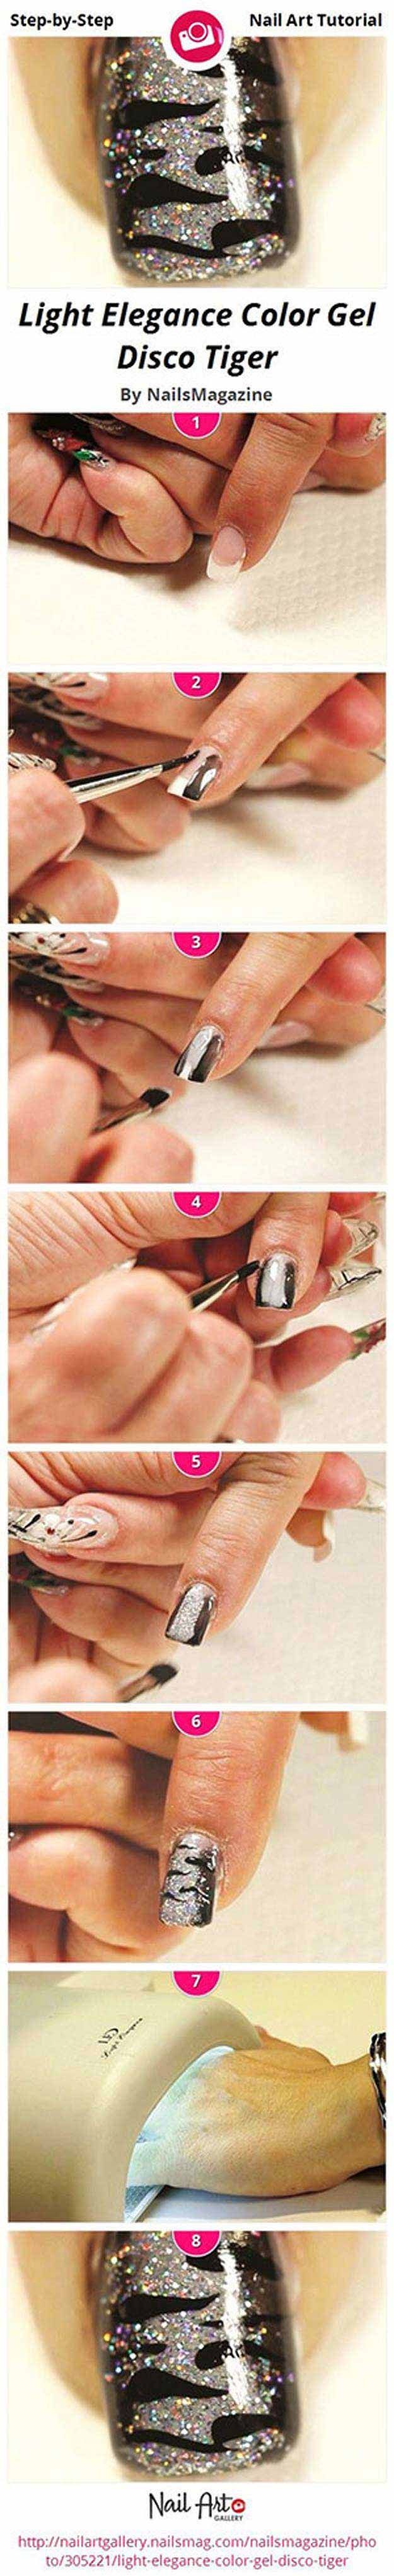 Best Gel Nail Designs - Easy Gel Nail Design - Disco Tiger Nail Art- Beautiful Gel Nail Designs And Pictures Of Manicures And Nailart To Give You Some Awesome Fashion Style. Step By Step Tutorials And Tips And Tricks And Ideas For Shape And Colour. Polish And Shape Your Nails To Match Your Makeup And Follow These Art Tutorials To Get That Sparkle In Your Tips. Try The Best Gel Nail Designs With Ideas For Summer, Fall, Spring, And Winter. Gel Nail Art Is Awesome And Goes Great With These…